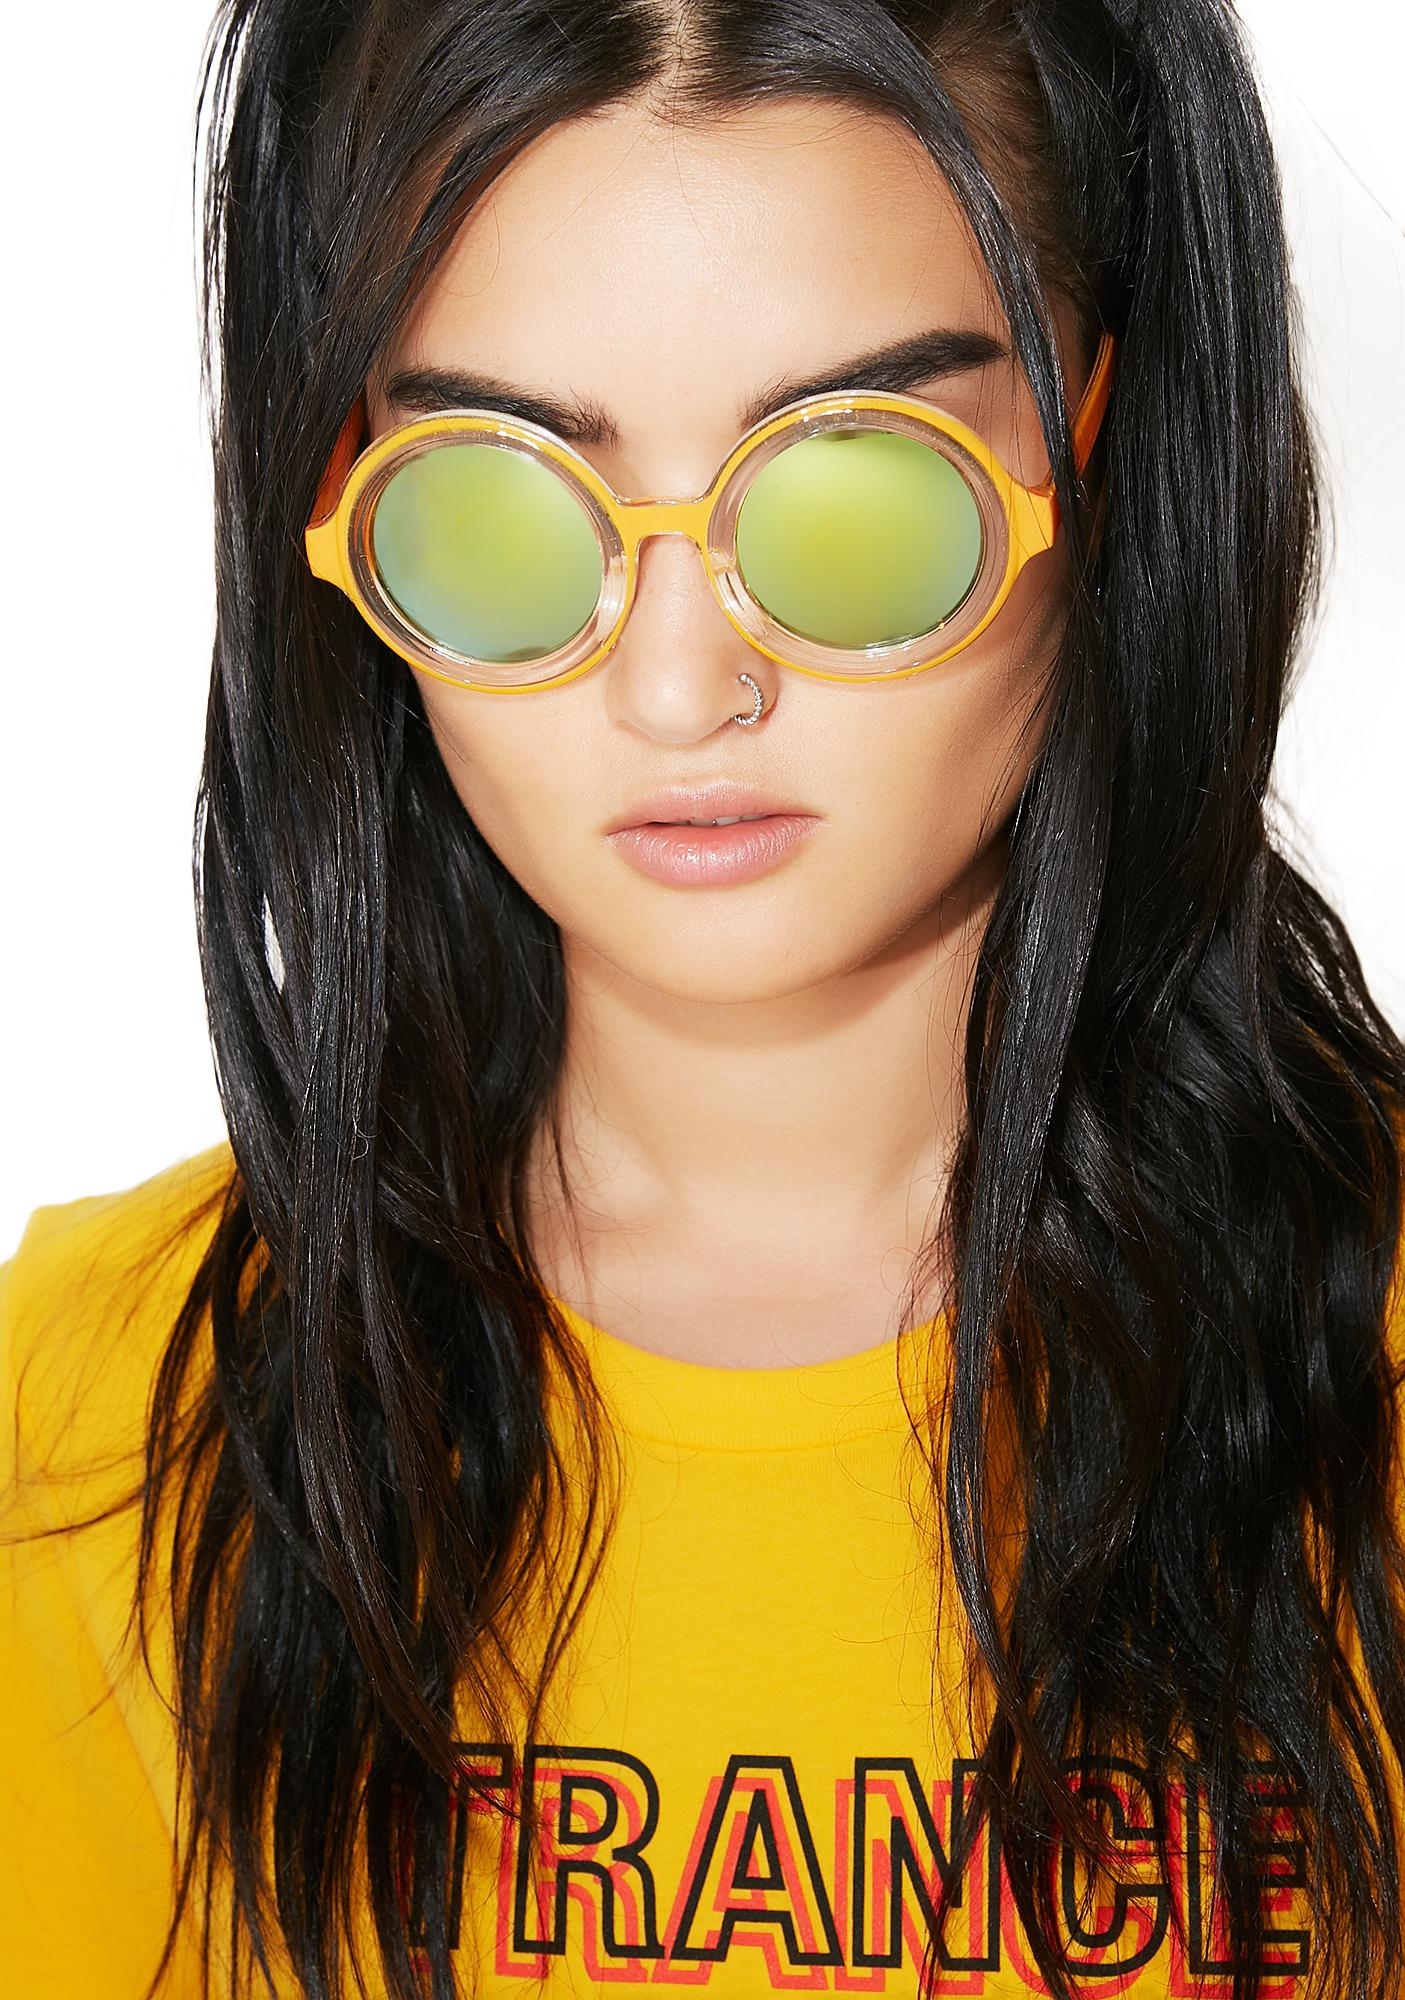 Petals and Peacocks Ecstasy Sunglasses